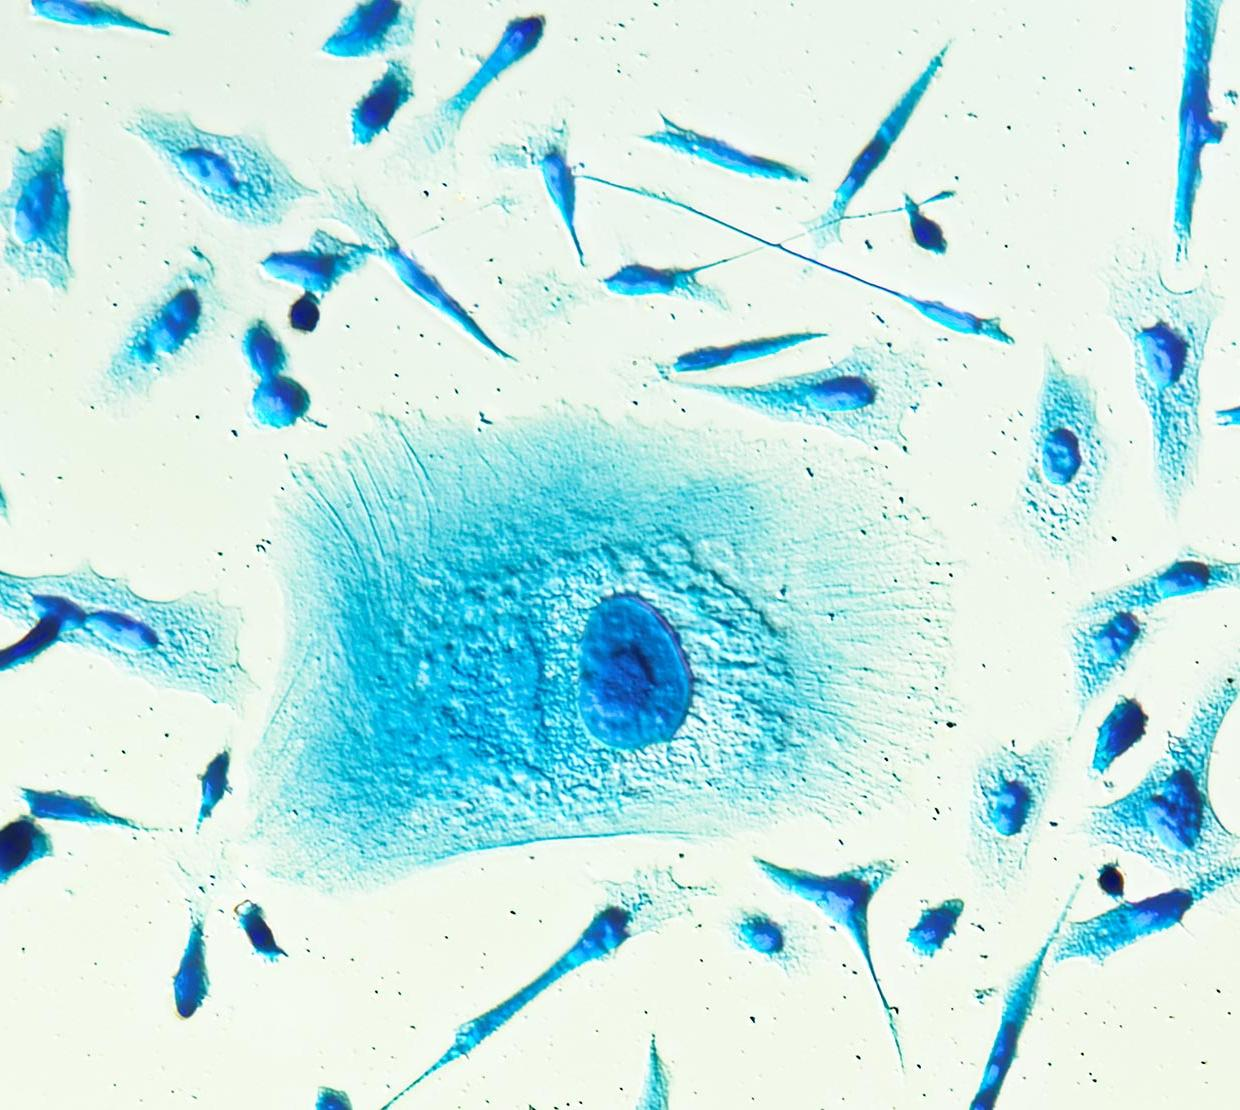 microscopic image of blue PC-3 cancer cells